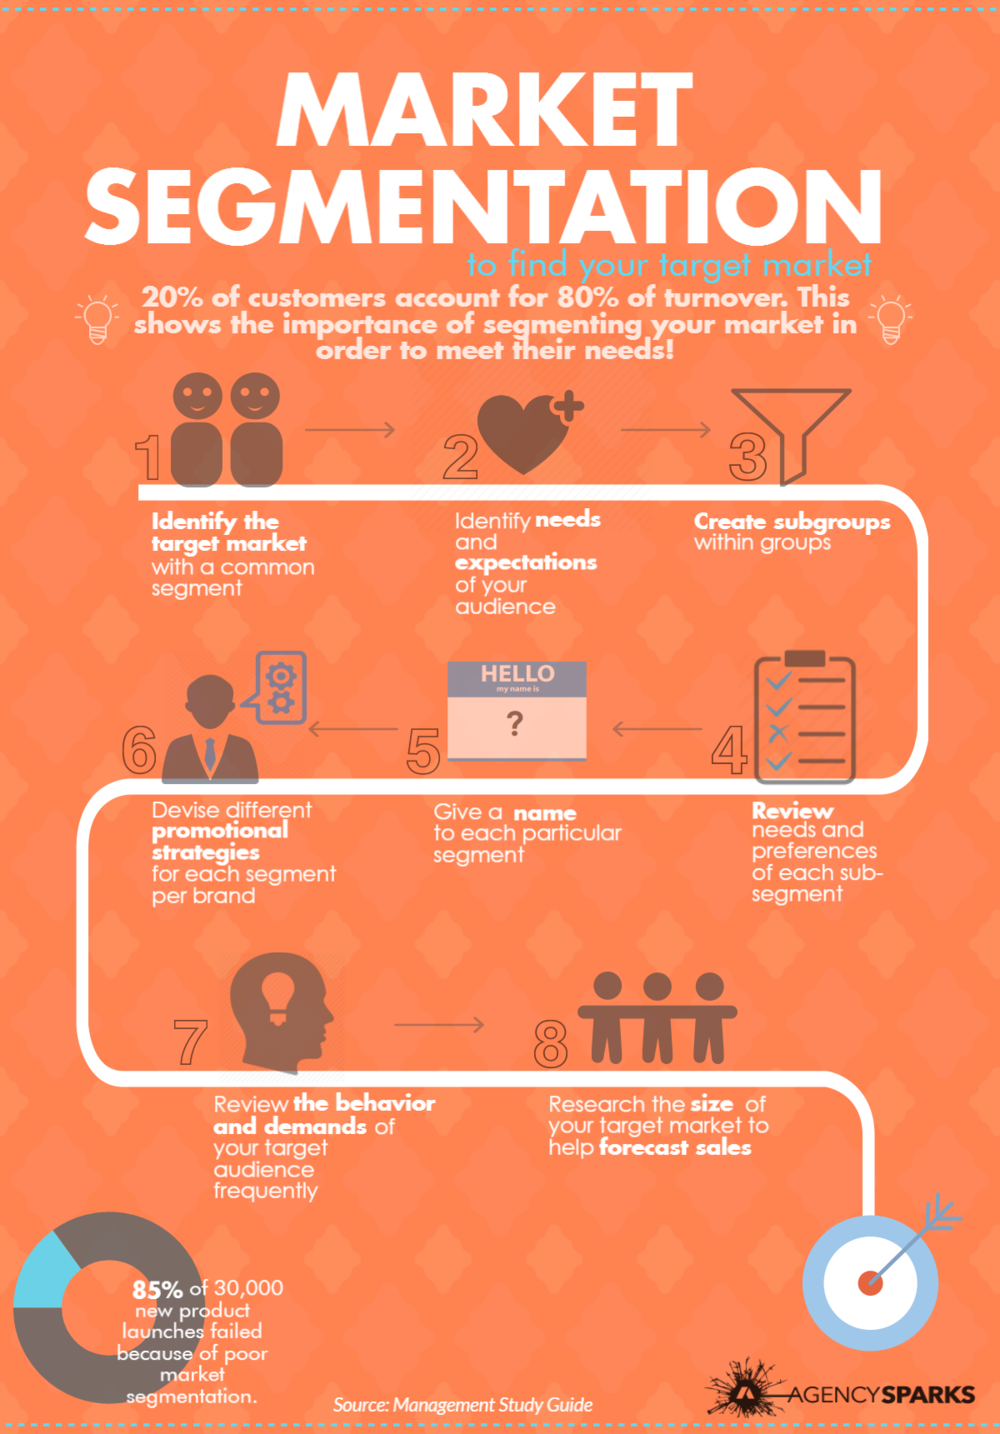 When it comes to selecting the right target market for your brand, there are several steps you need to take to get there. Segmentation can be described as the process of creating small segments within a broad market in order to identify the right customers. Segmentation can help with meeting your customer's needs. The 8 steps shown above, from Management Study Guide, emphasize the importance of identifying the needs and expectations of your audience,  creating sub-segments, and reviewing the demands of your target audience frequently. Make sure to research the size of your target market in order to help forecast sales and avoid poor market segmentation.